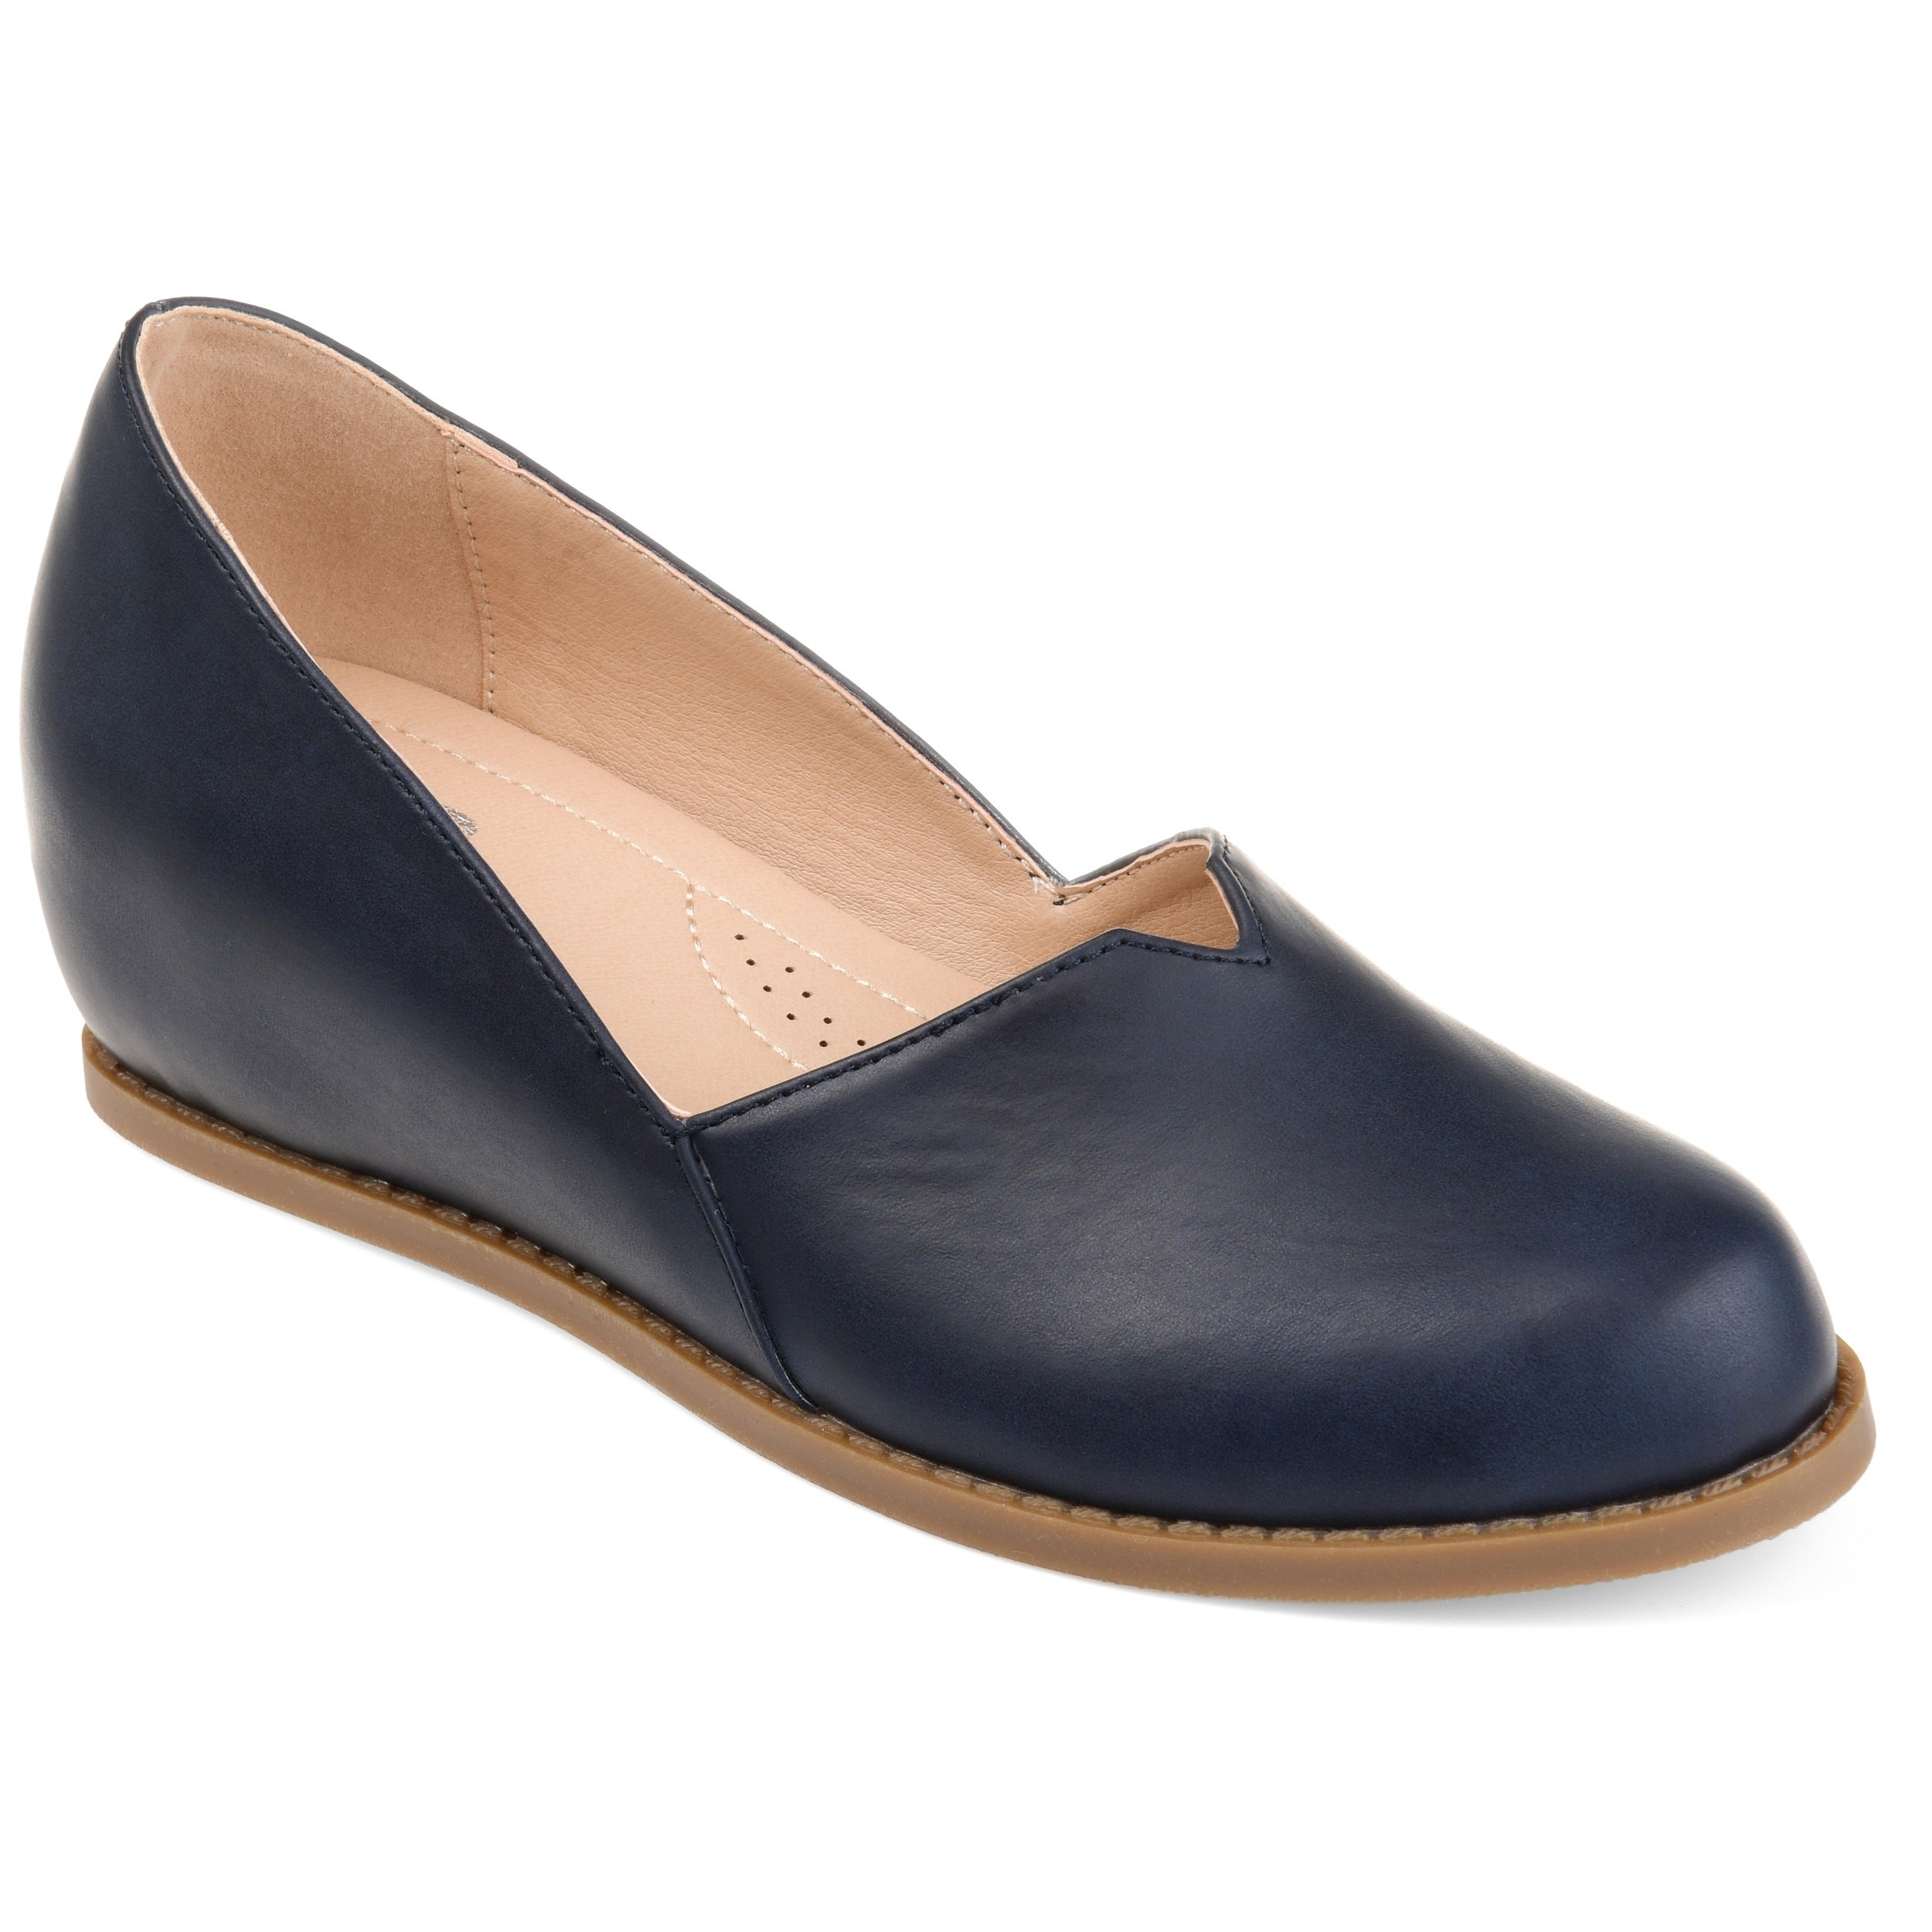 8790703df1b Shop Journee Collection Comfort Val Women s Wedge Loafers - Free Shipping  Today - Overstock - 20907974